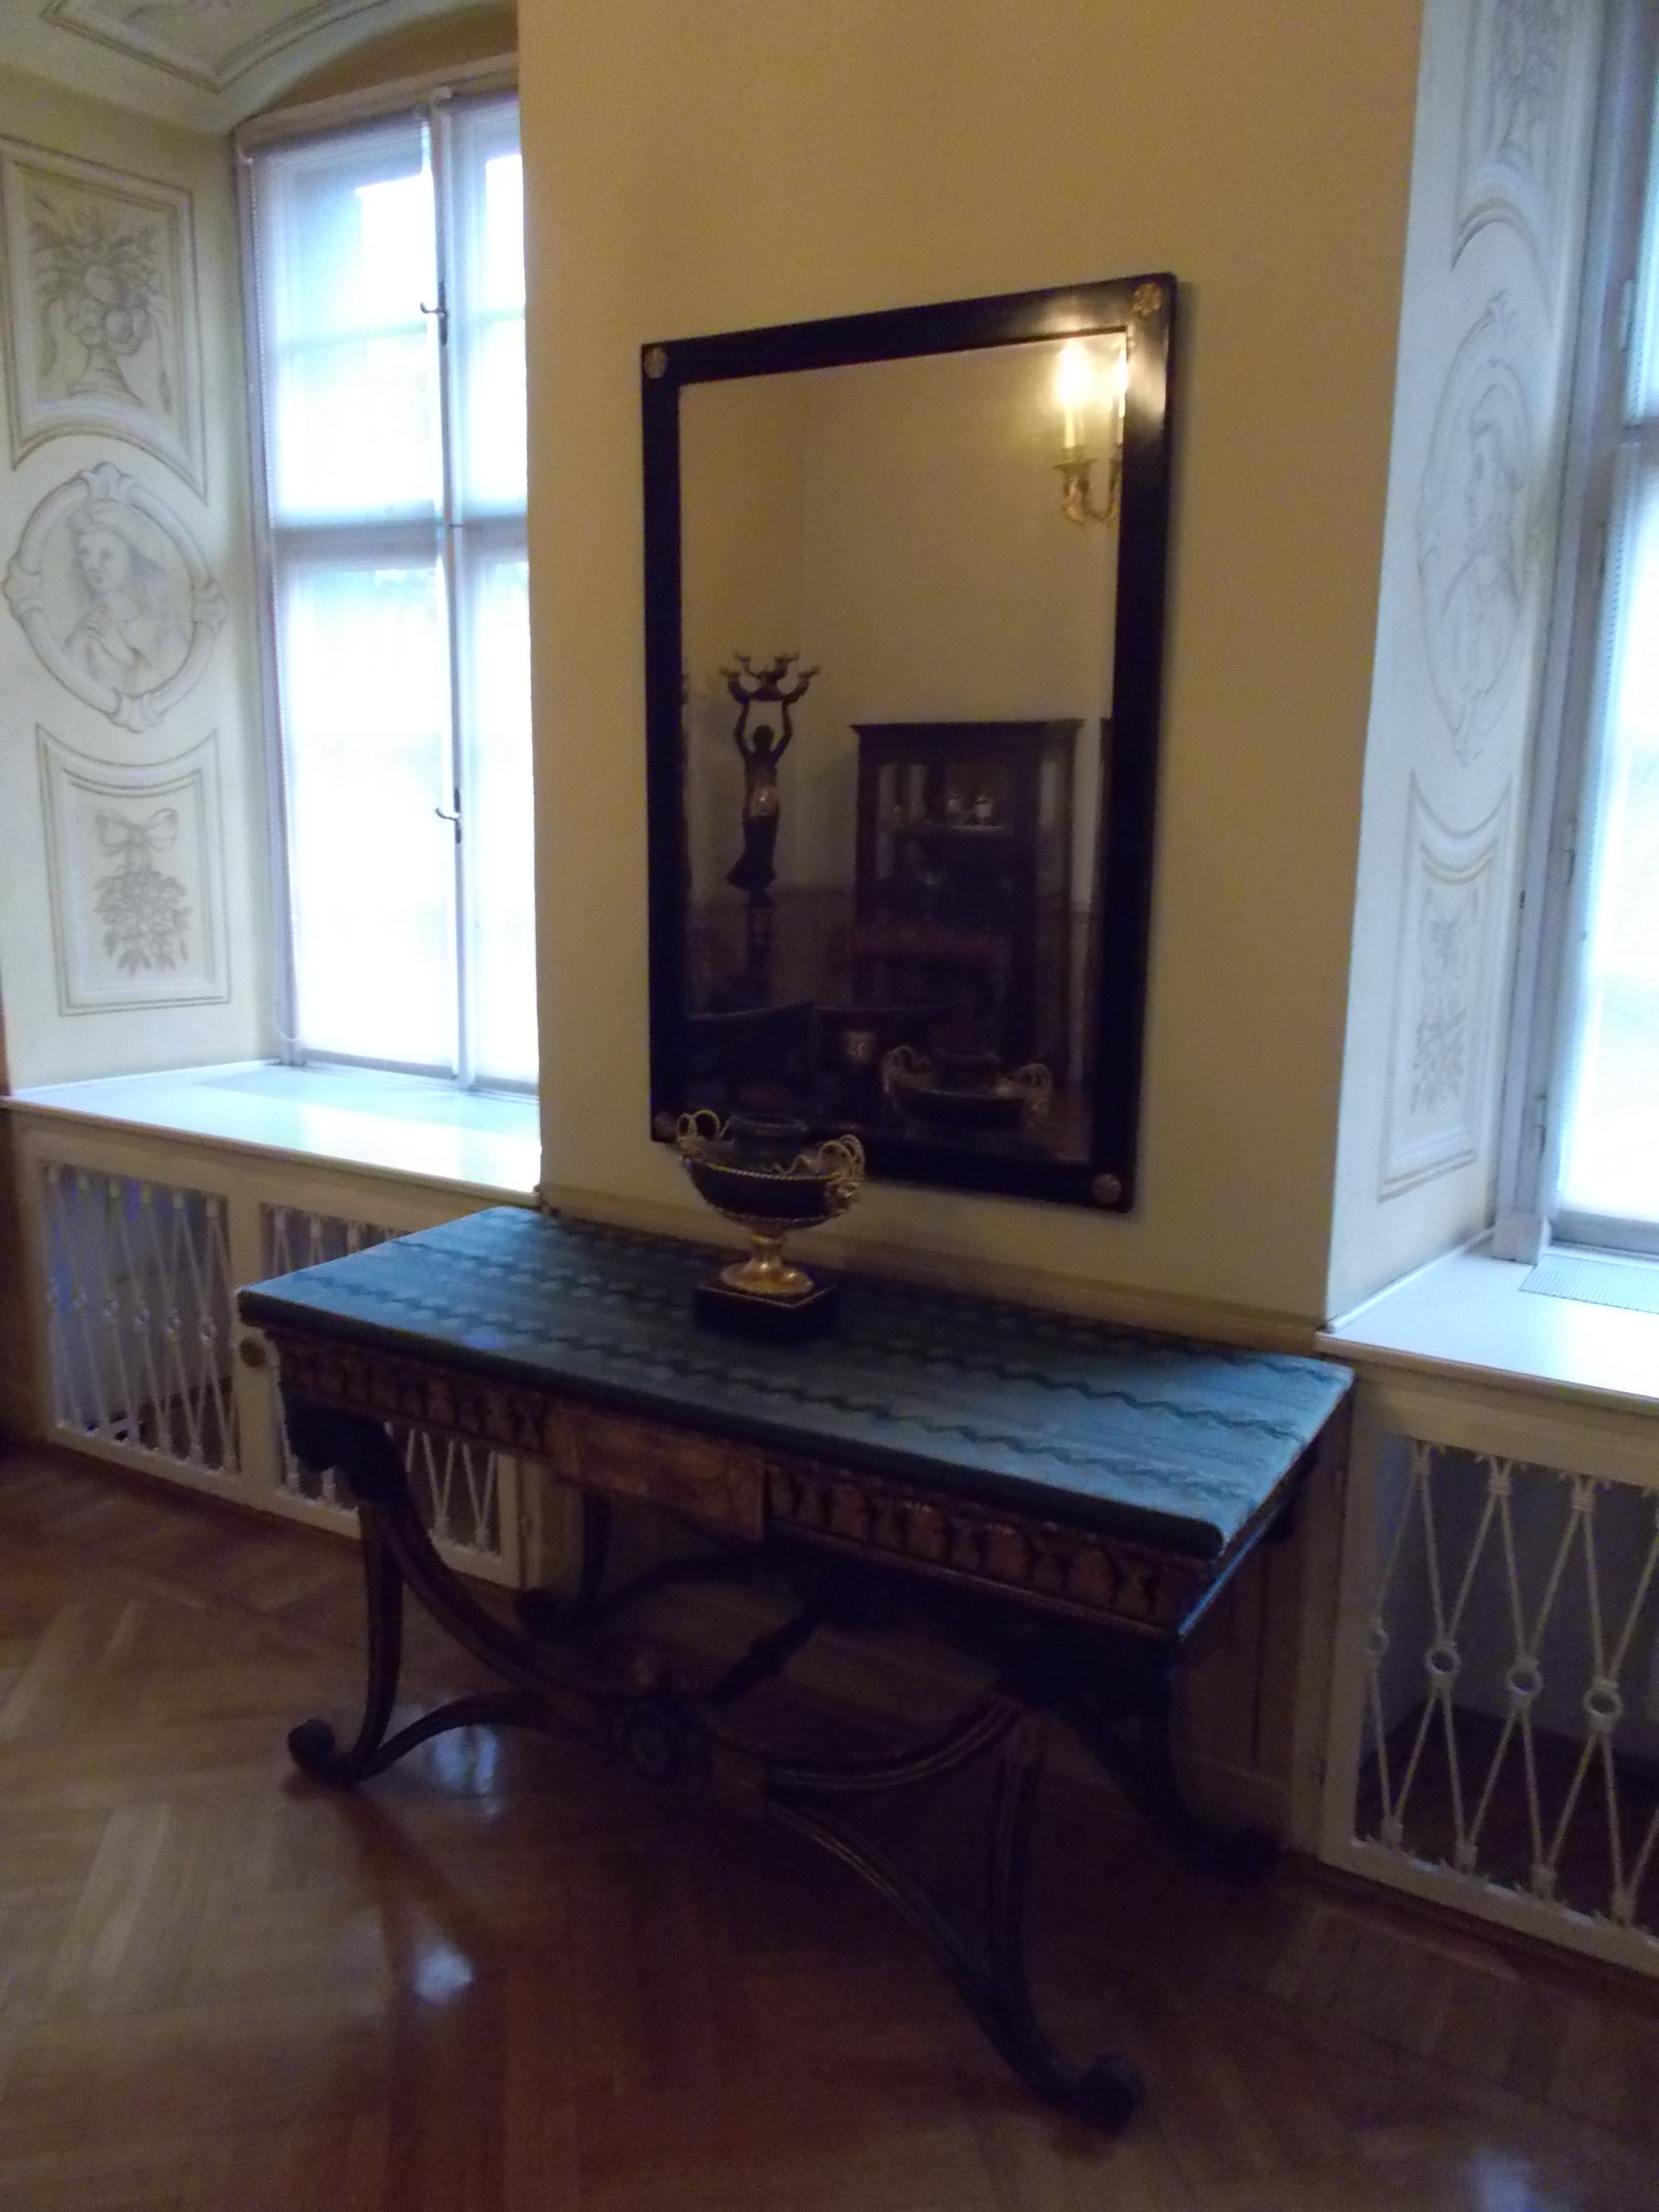 R 24. Wall Mirror And Console Table, Cca 1810